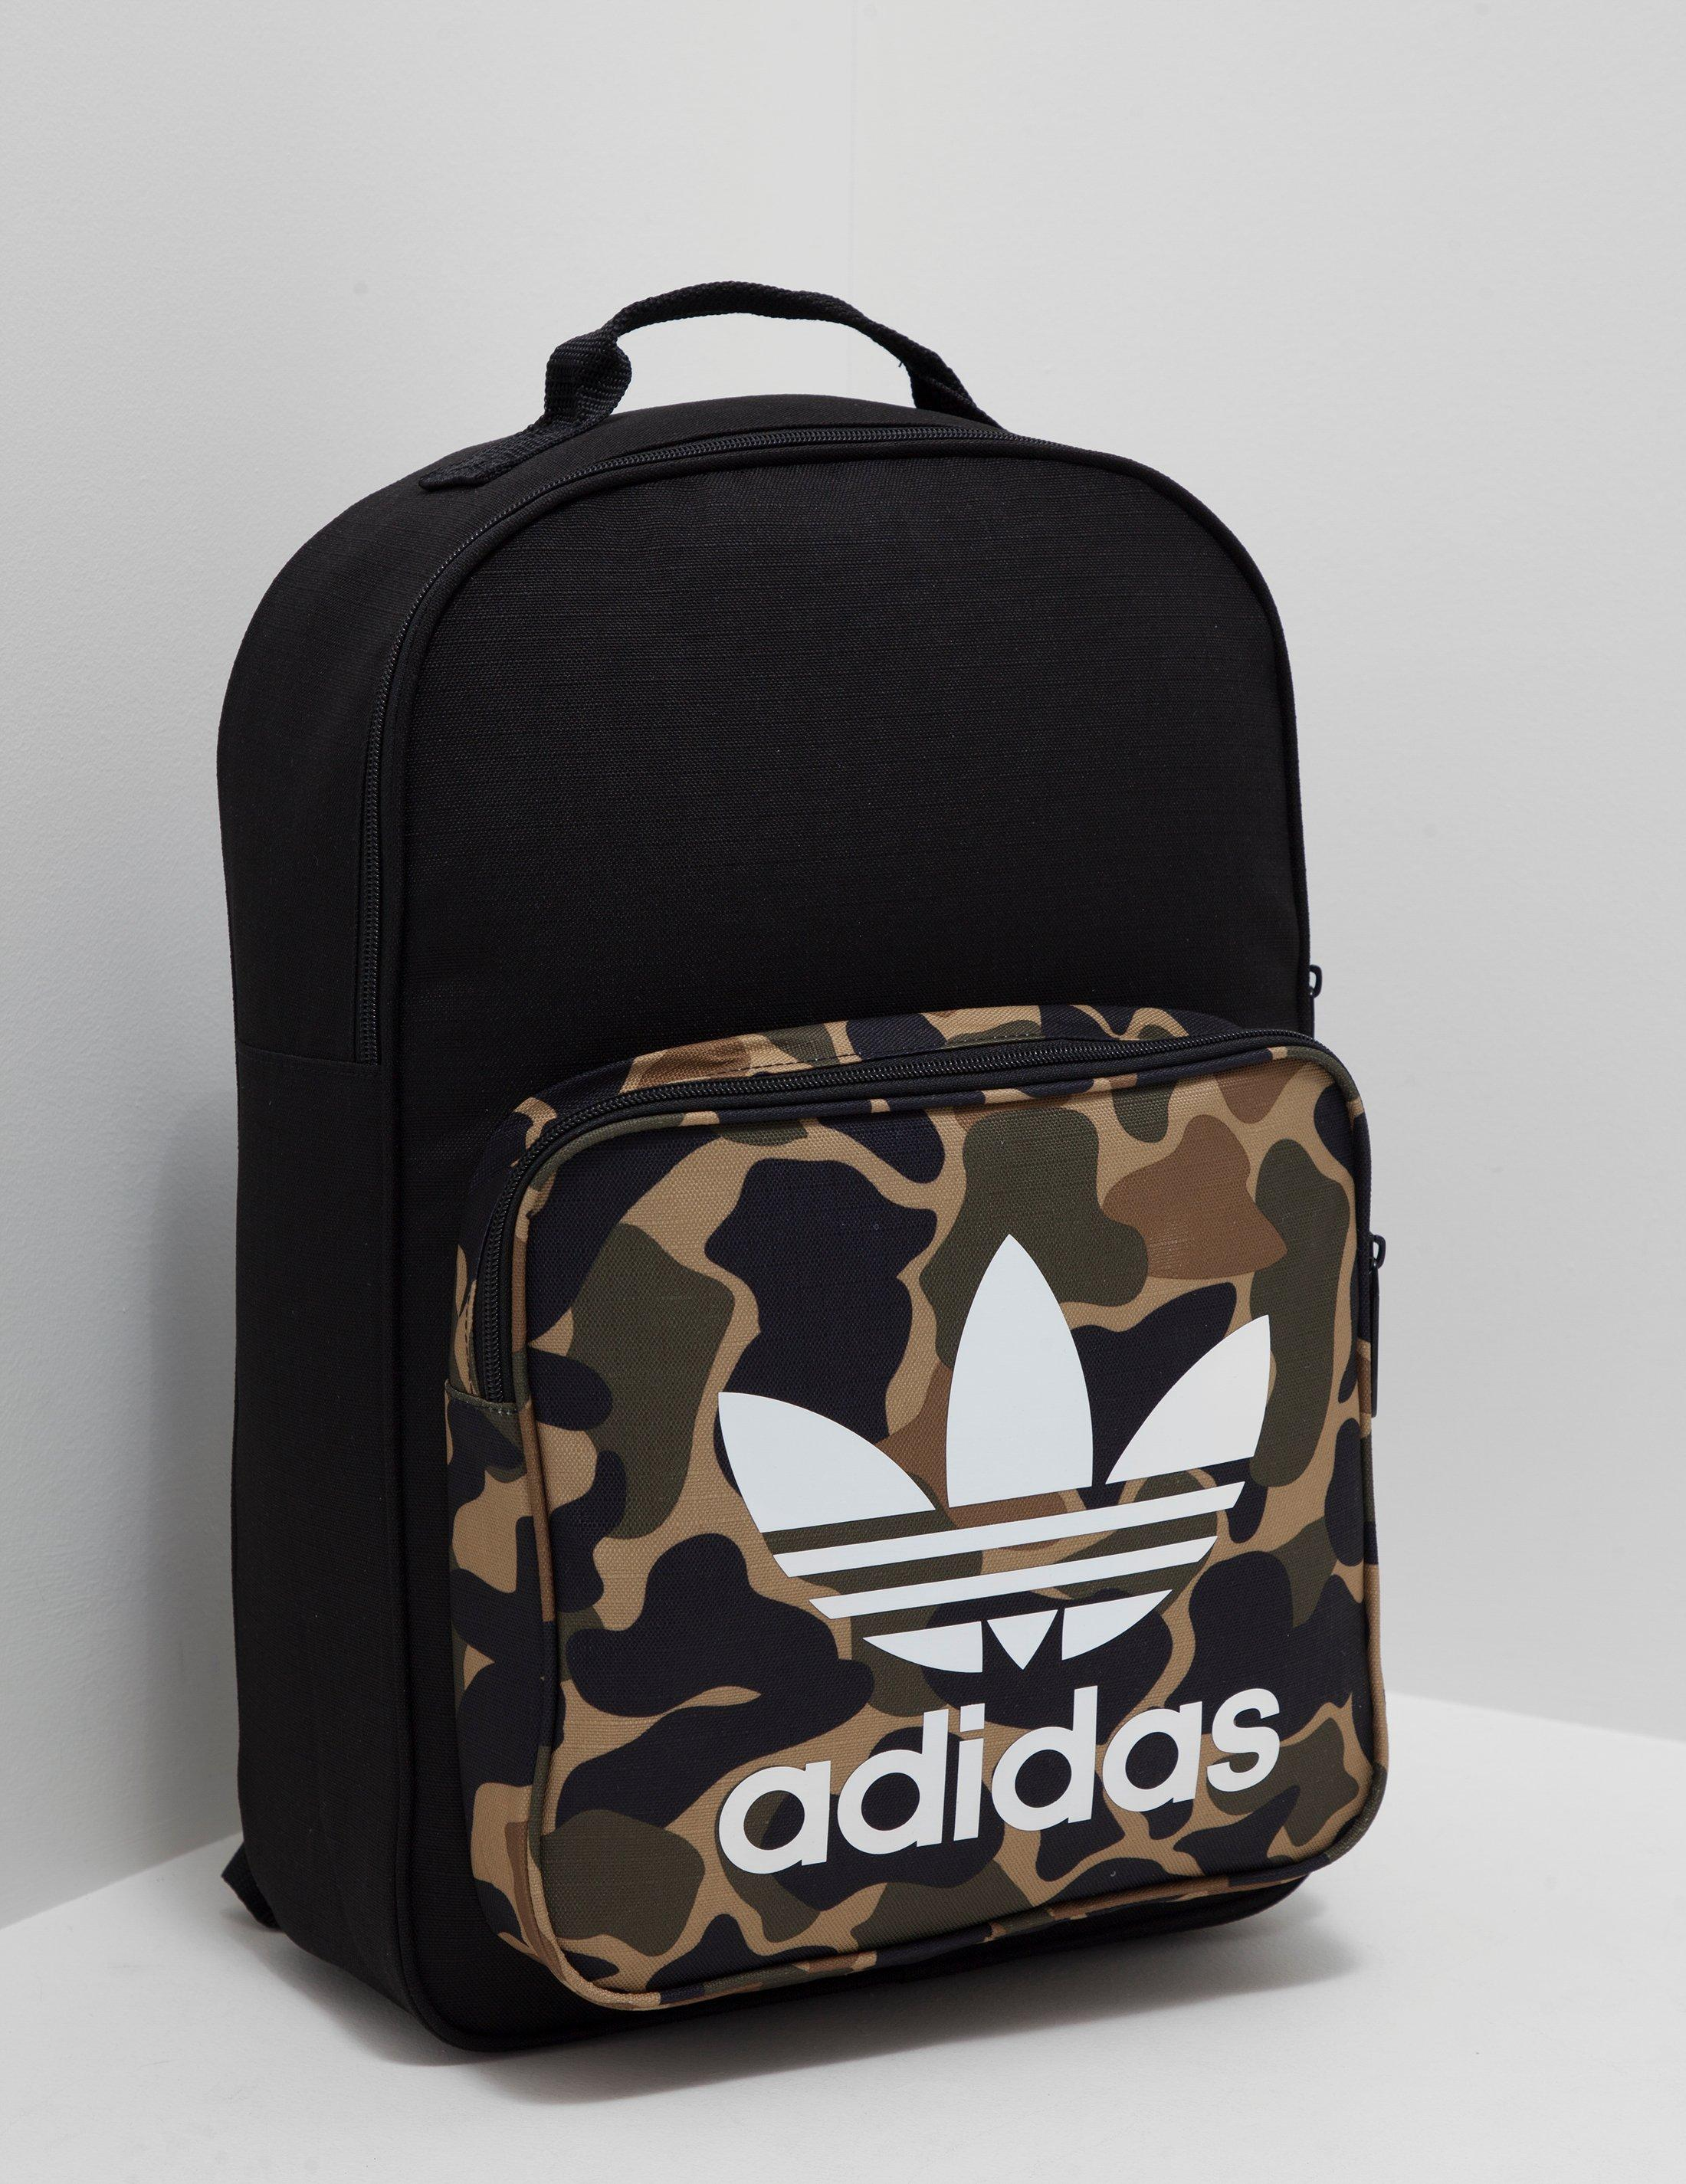 64db466f7533 Black and camo adidas backpack fenix toulouse handball jpg 2200x2850 Adidas  bookbag